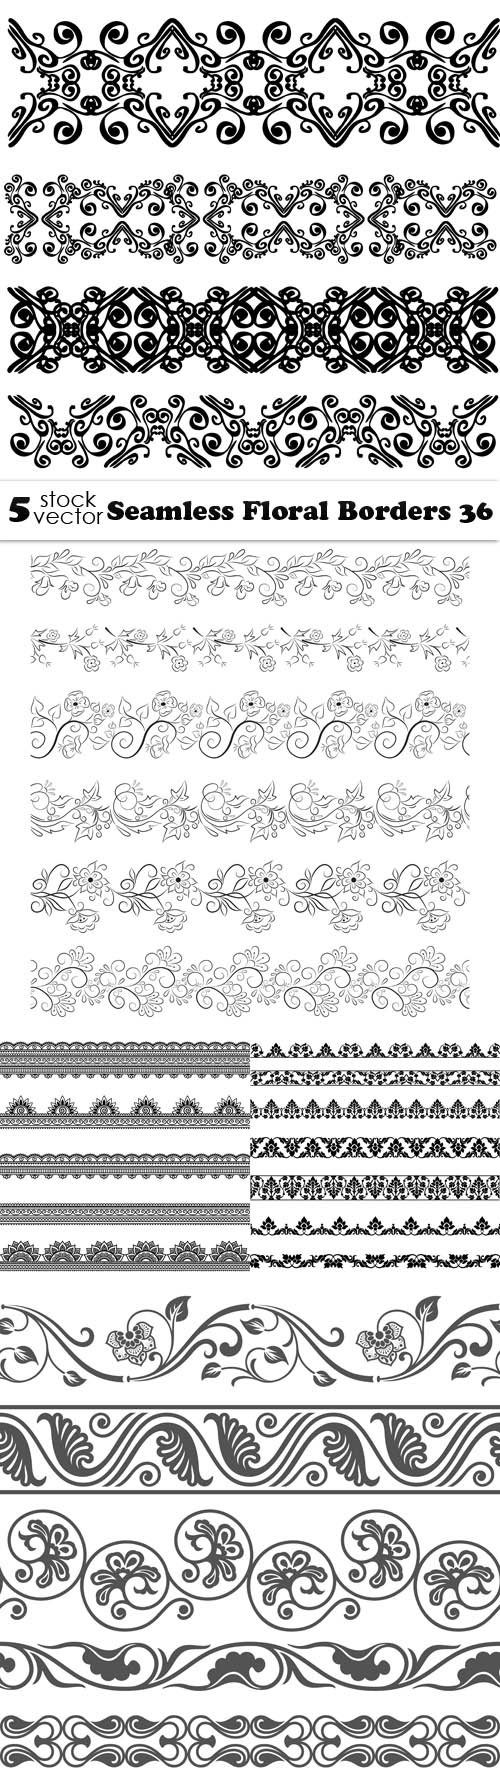 Vectors - Seamless Floral Borders 36